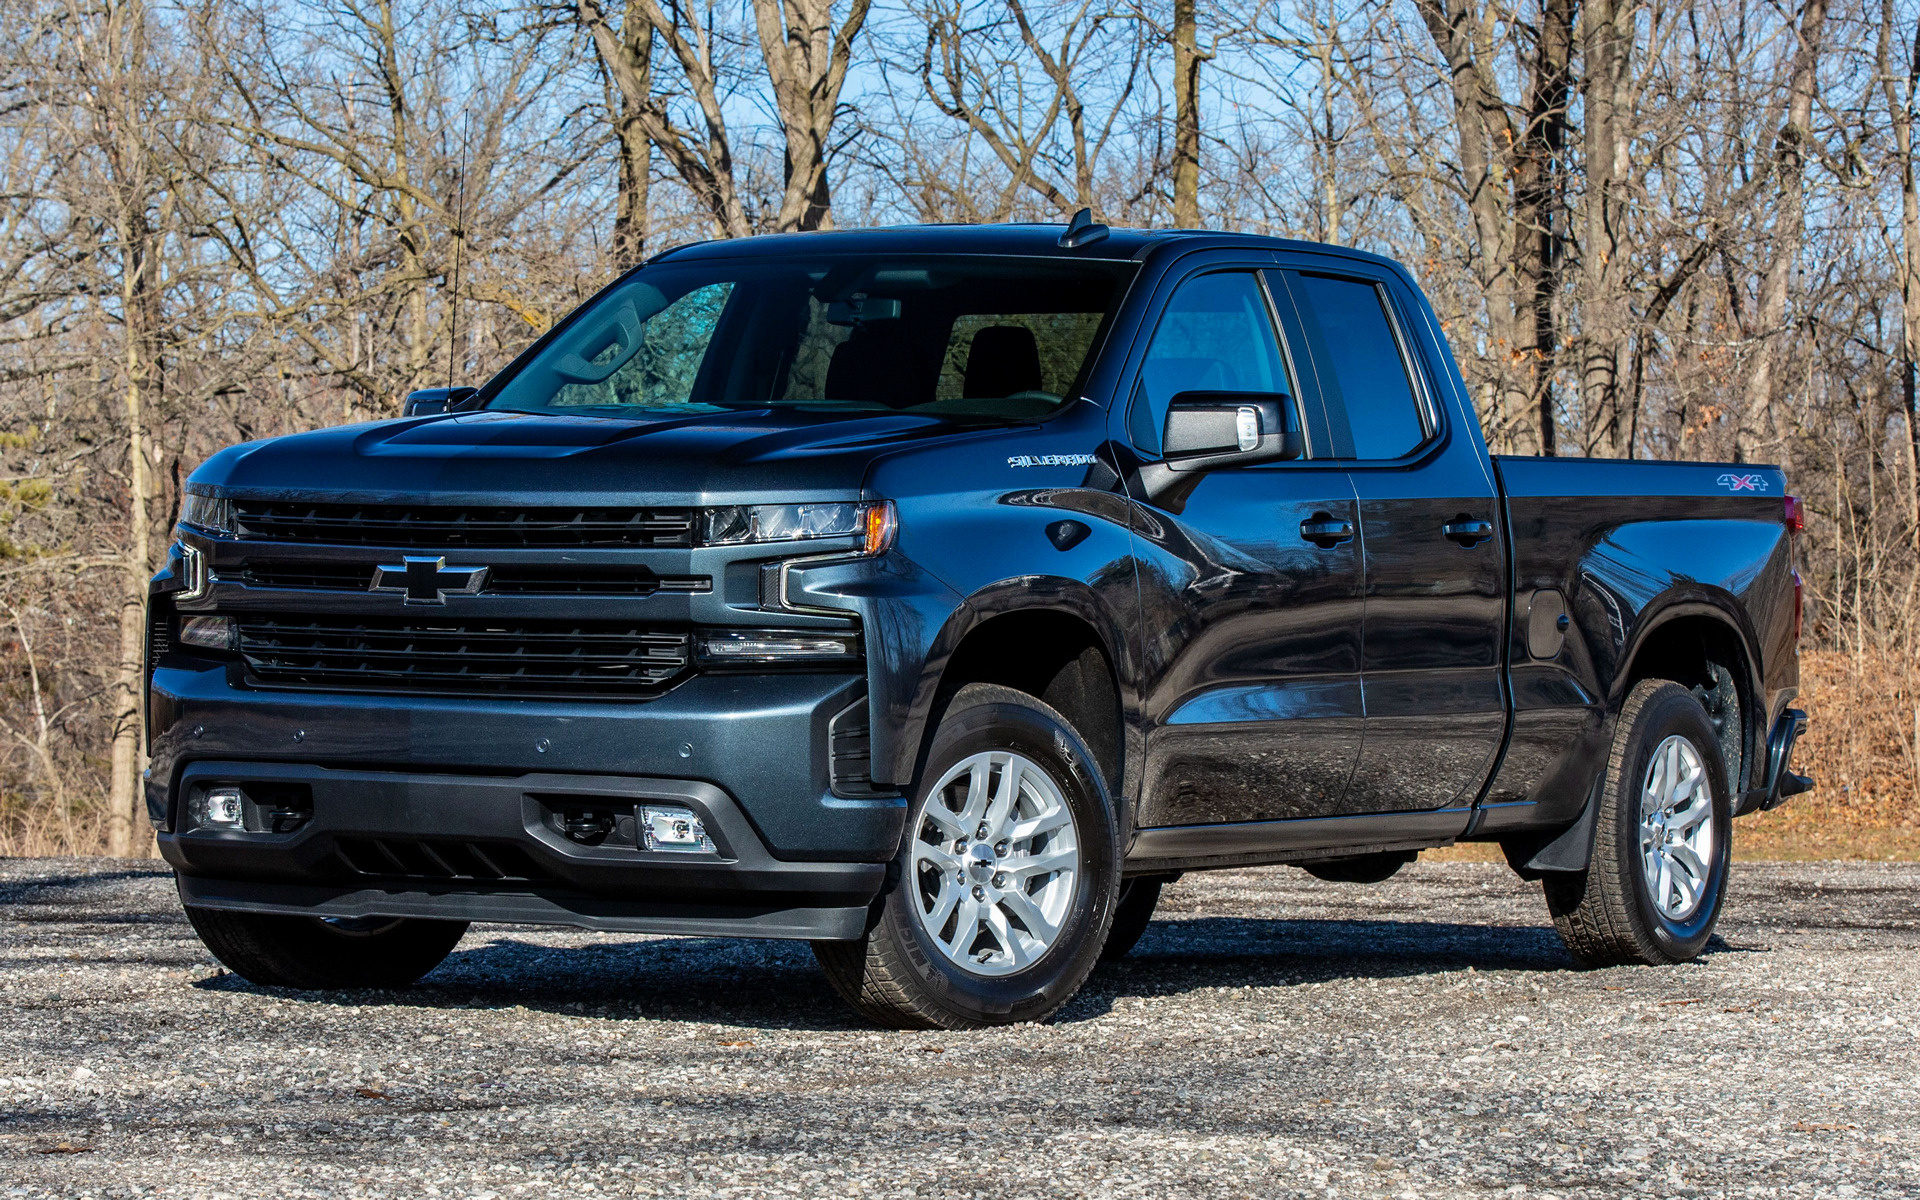 2019 Chevrolet Silverado RST Double Cab - Wallpapers and ...